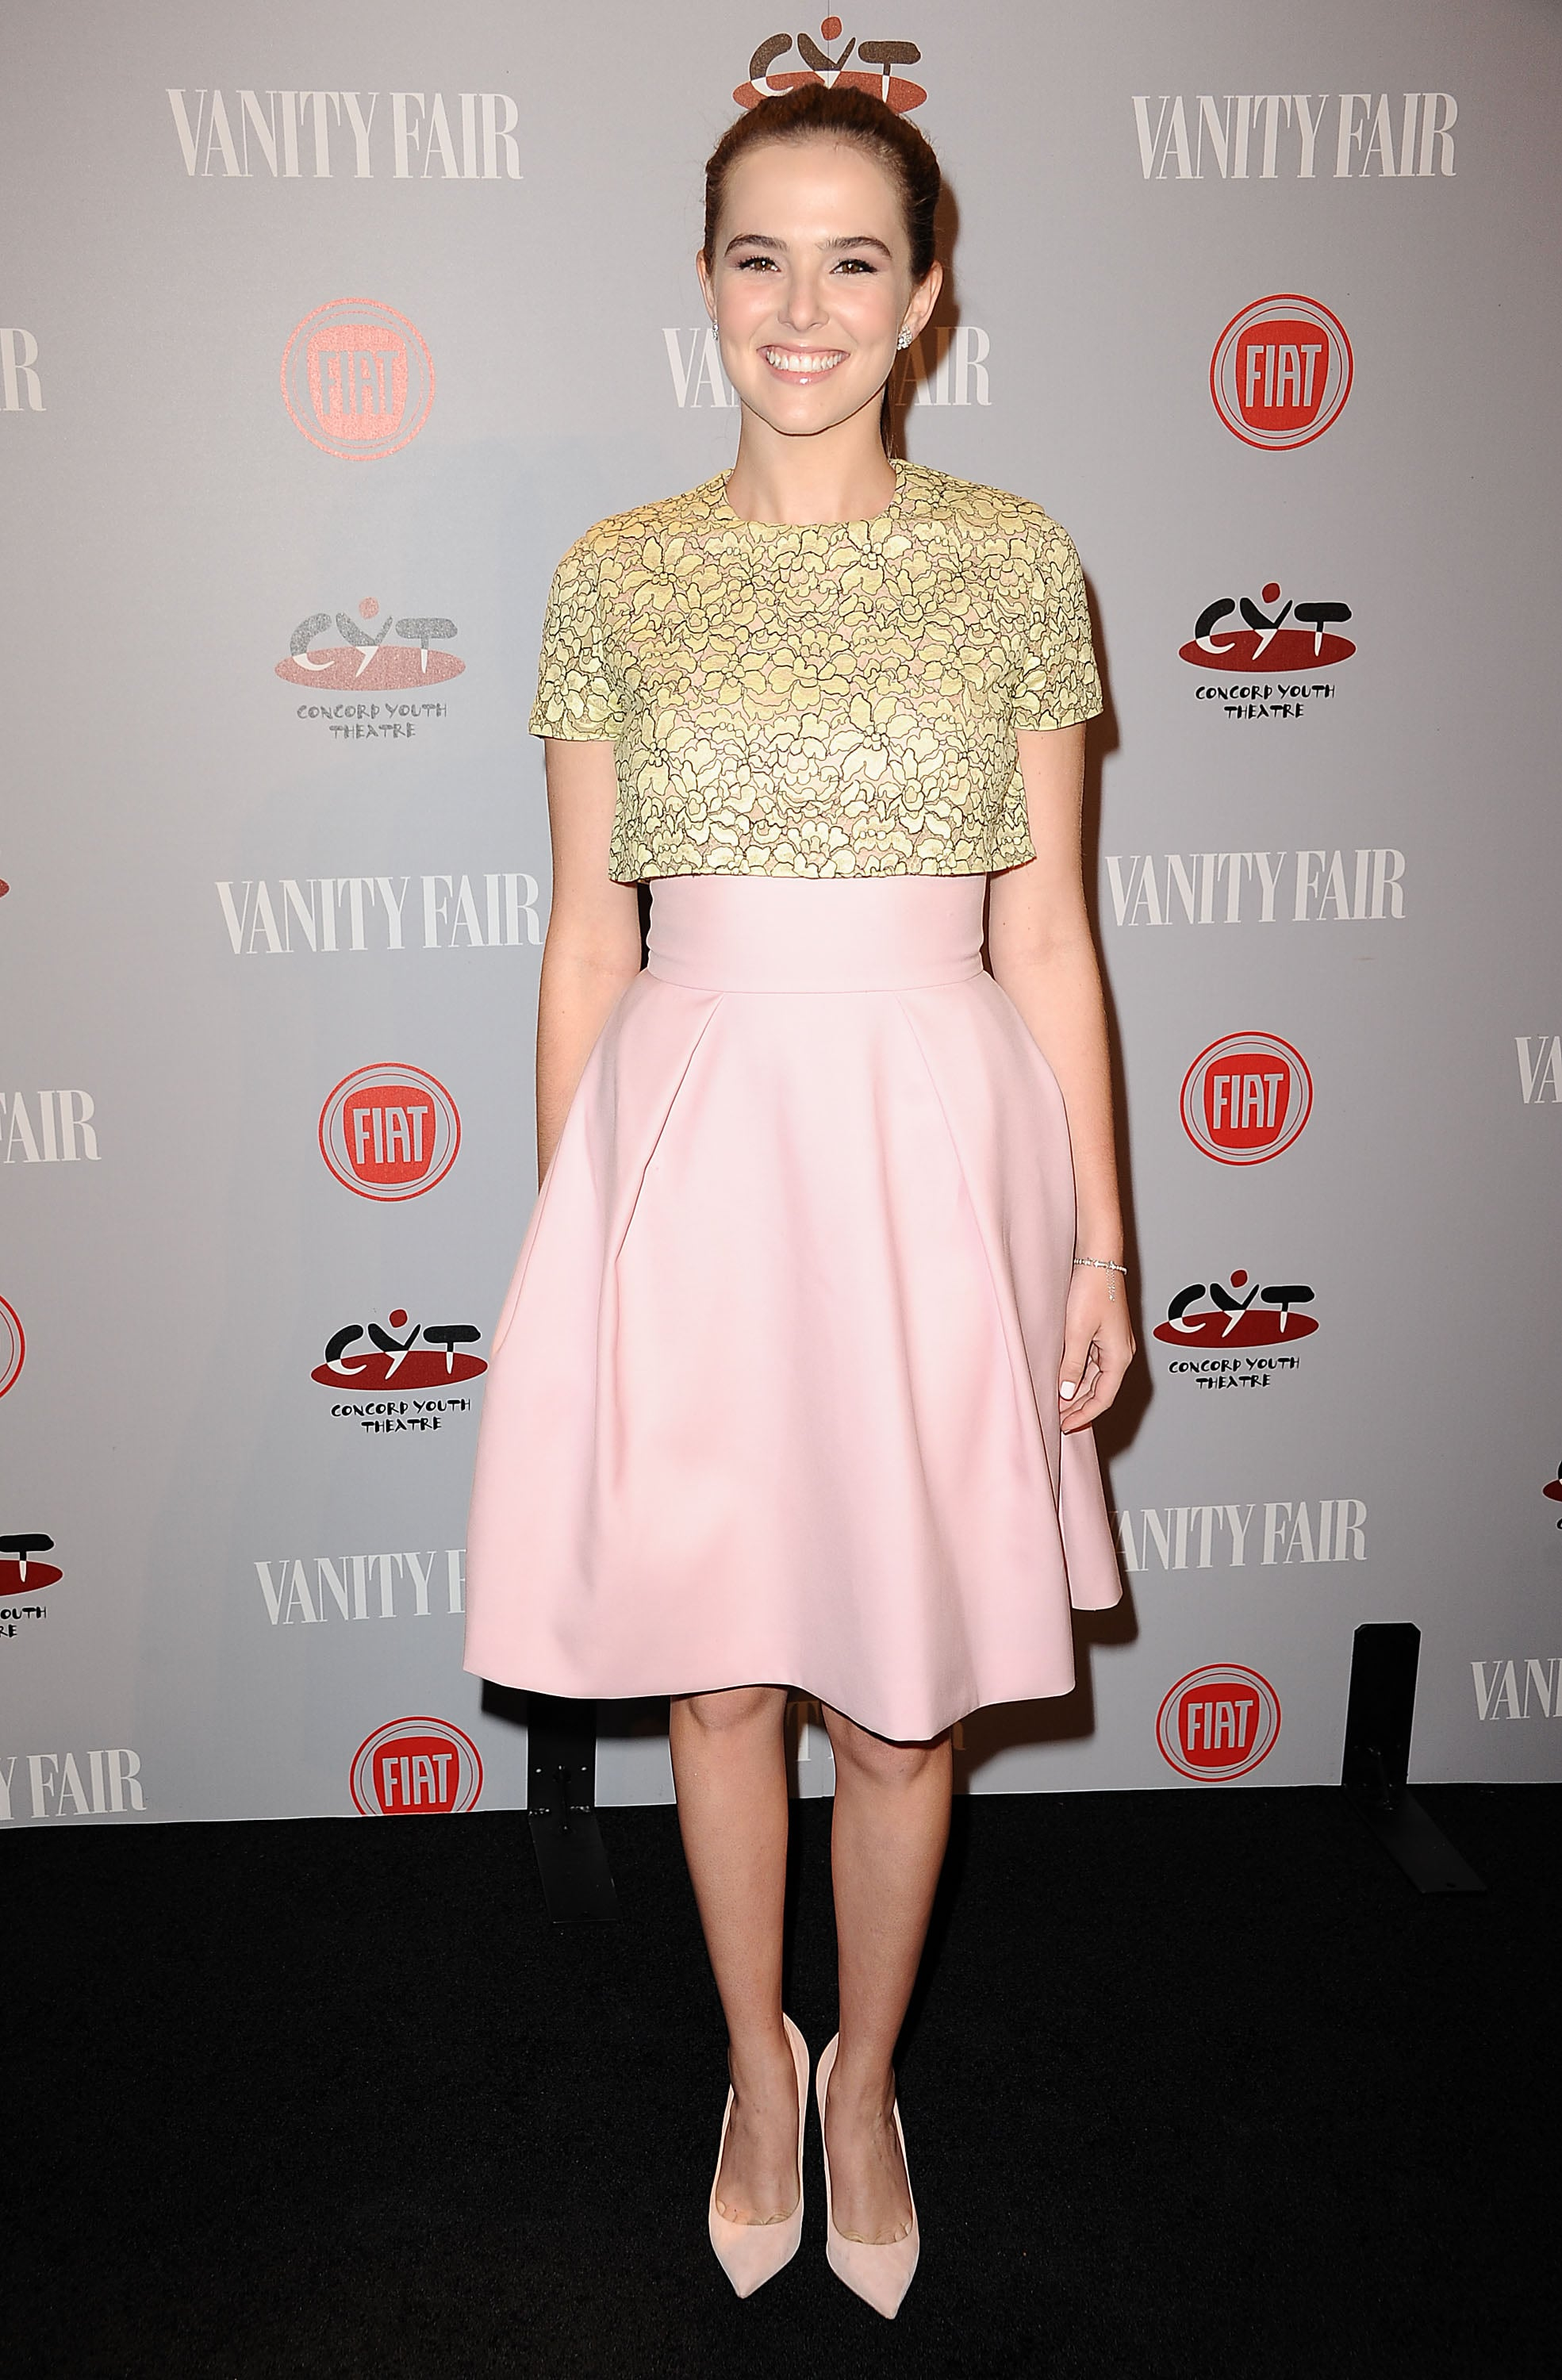 Vampire Academy star Zoey Deutch was pretty in pink.